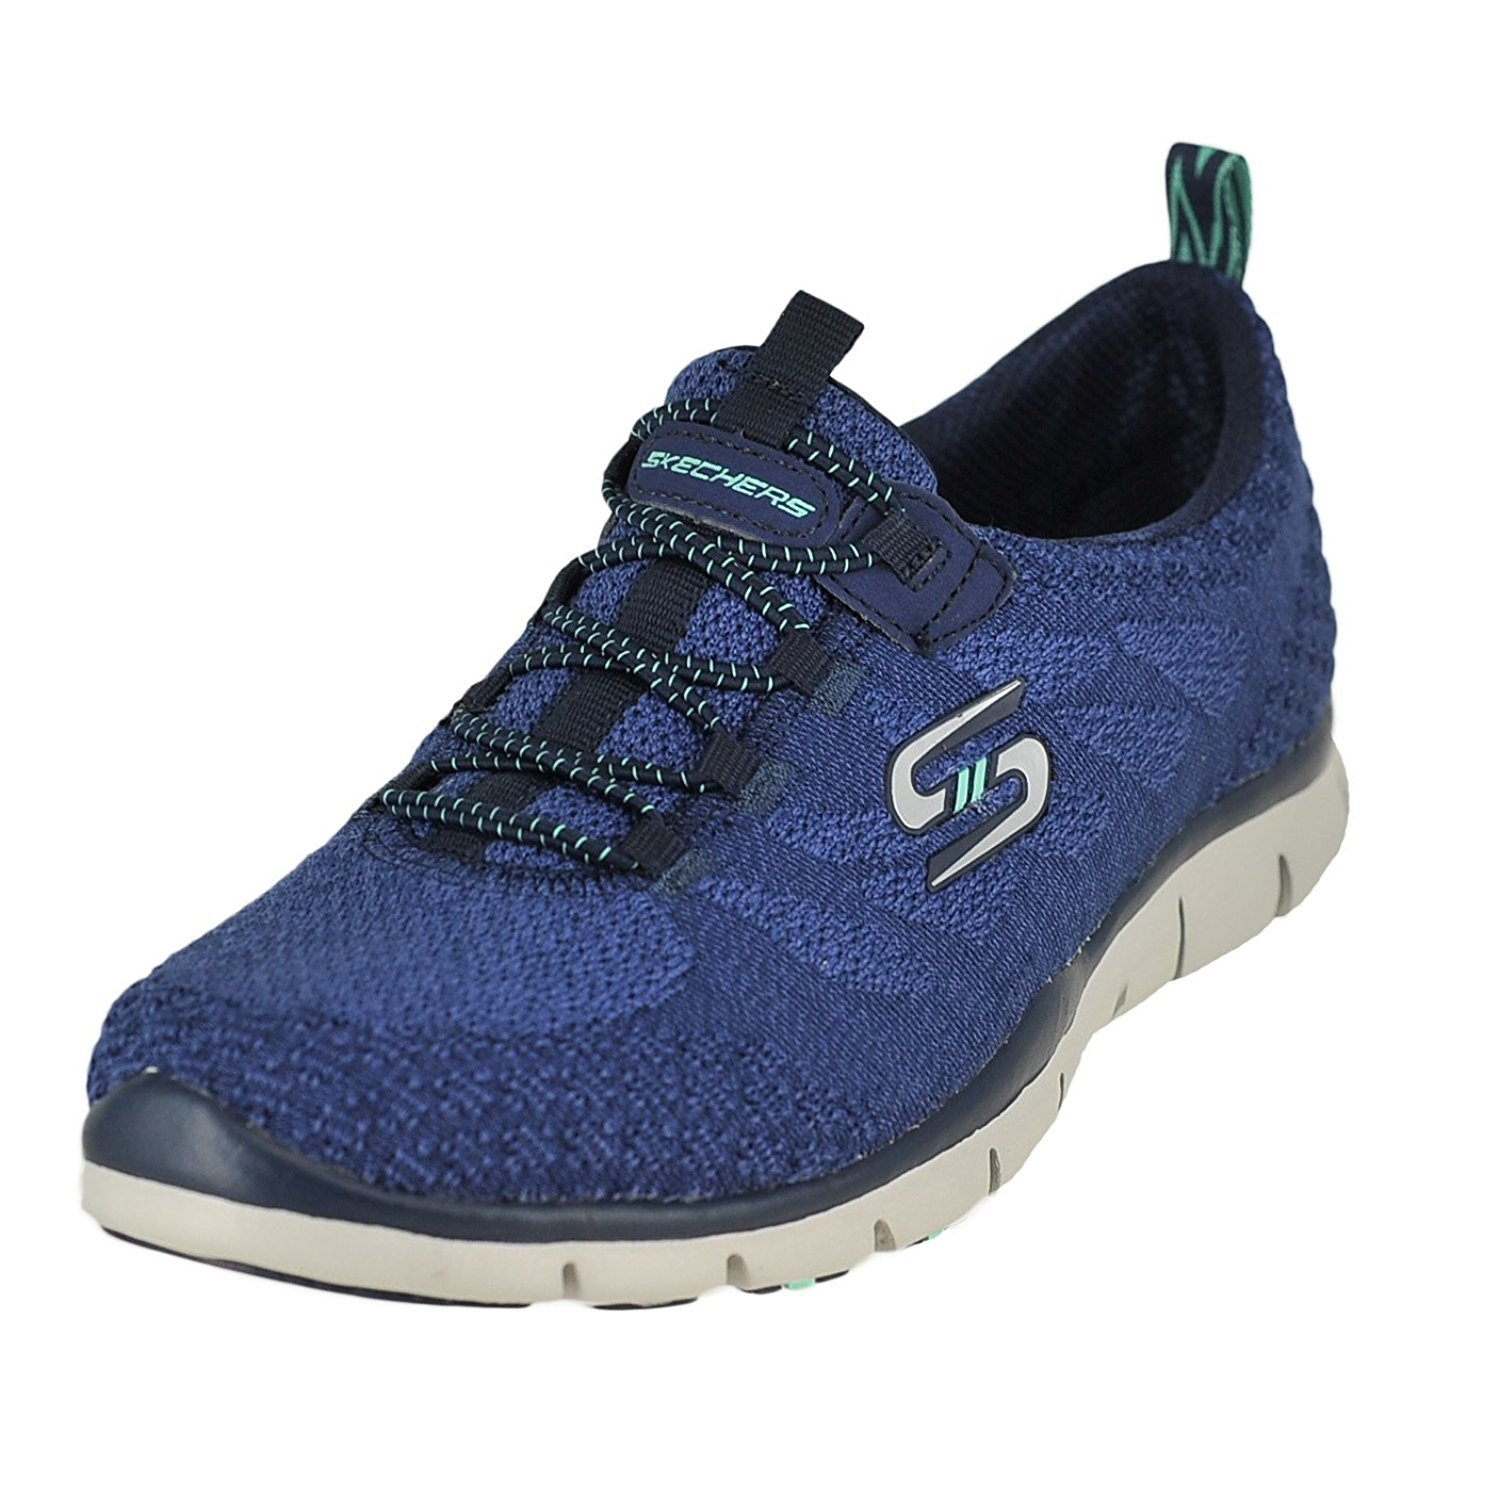 Skechers Gratis-Sleek & Chic Navy Womens Fashion Sneaker Size 7.5M